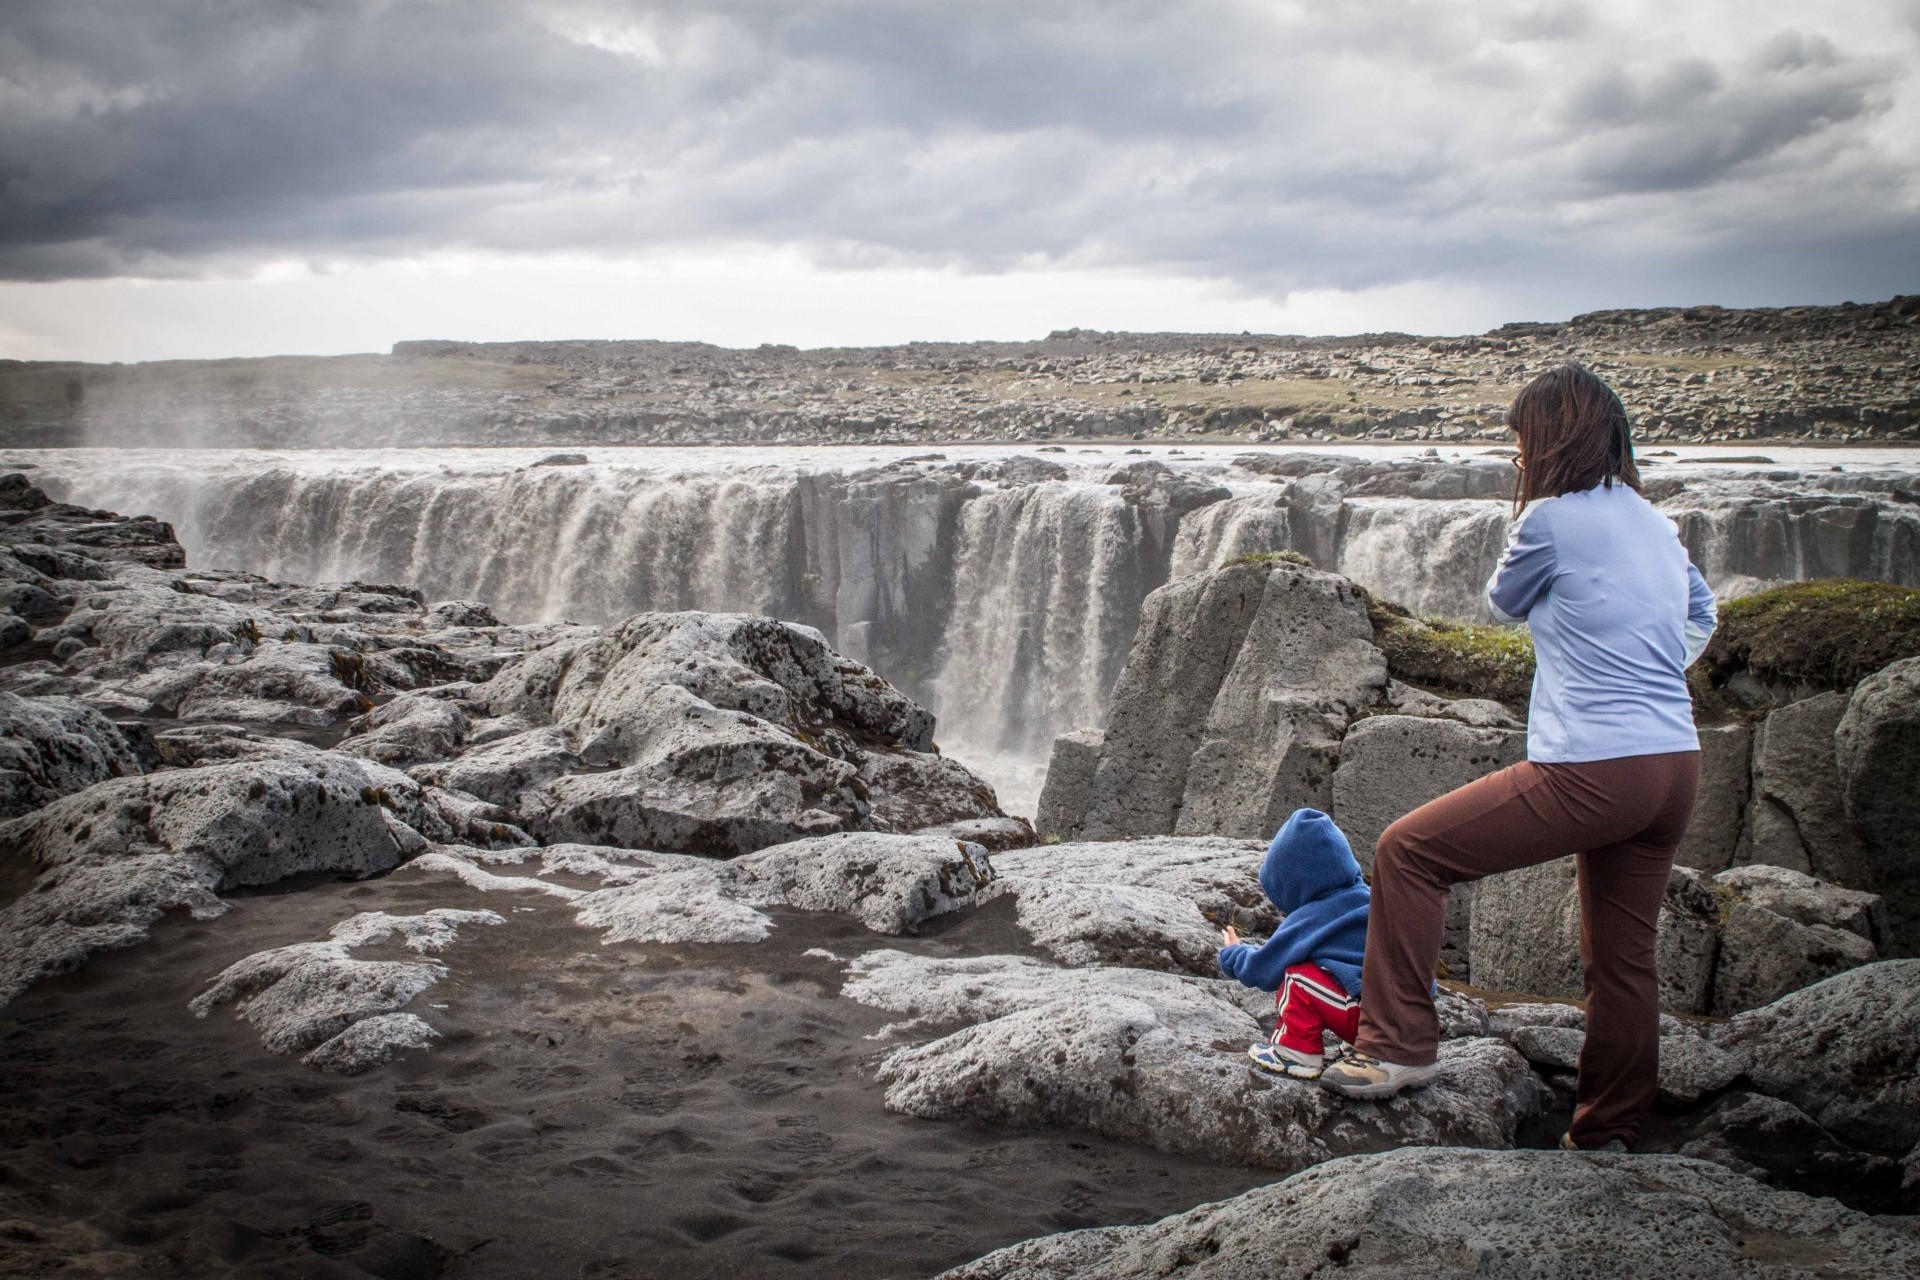 A woman and toddler watch a wide and roaring waterfall in Iceland - Icelandic Highlands